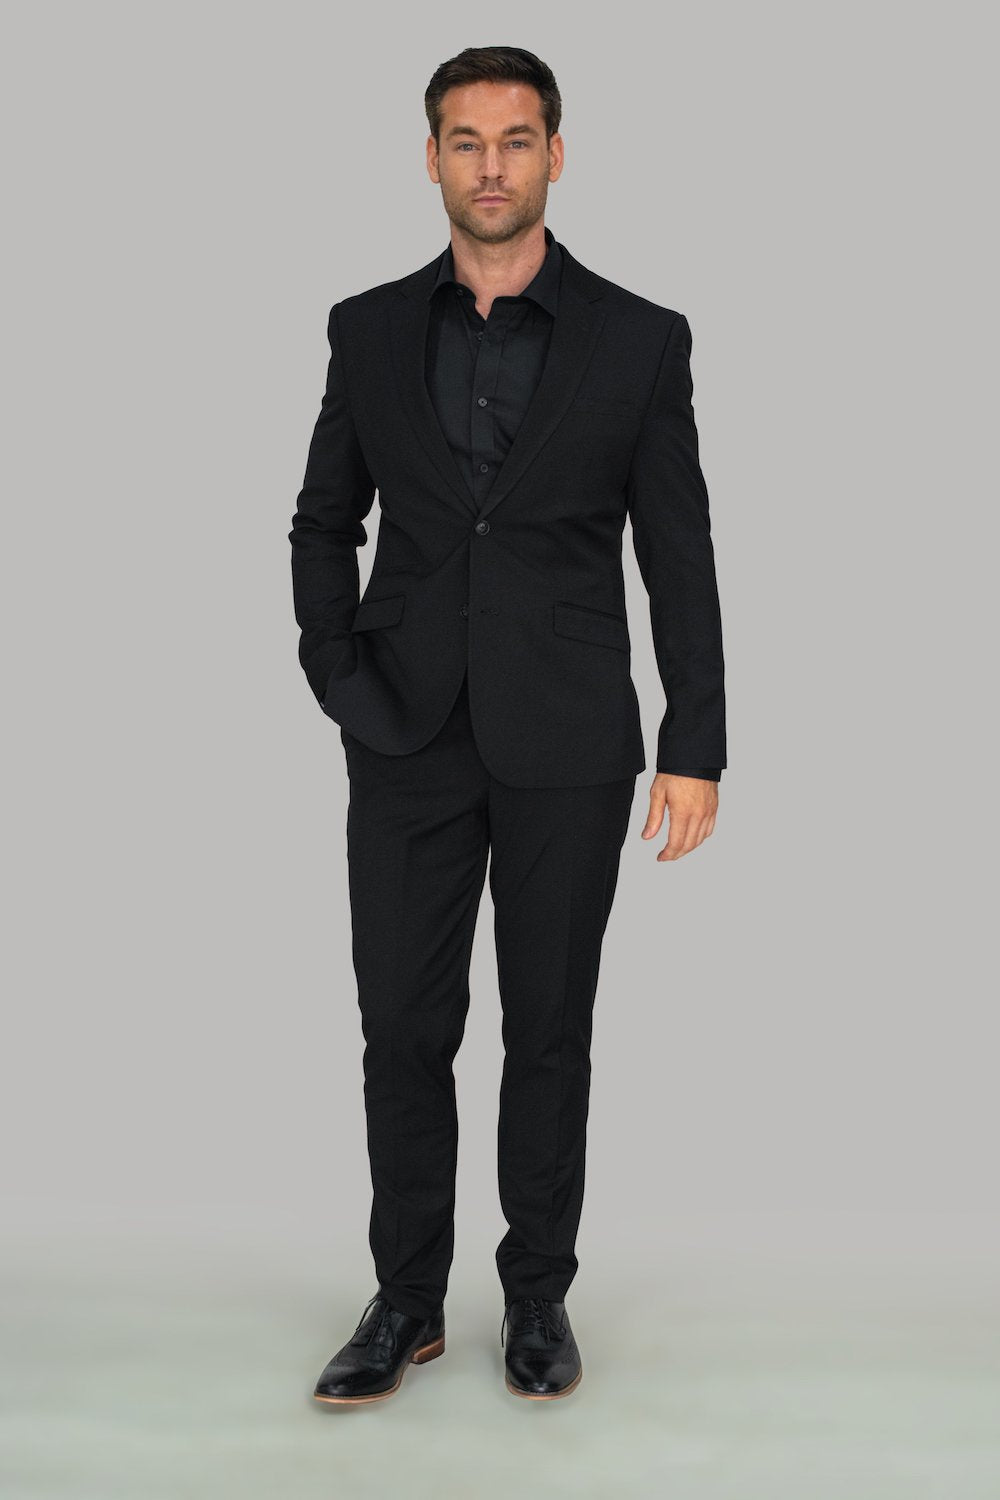 2 Piece Black Suit